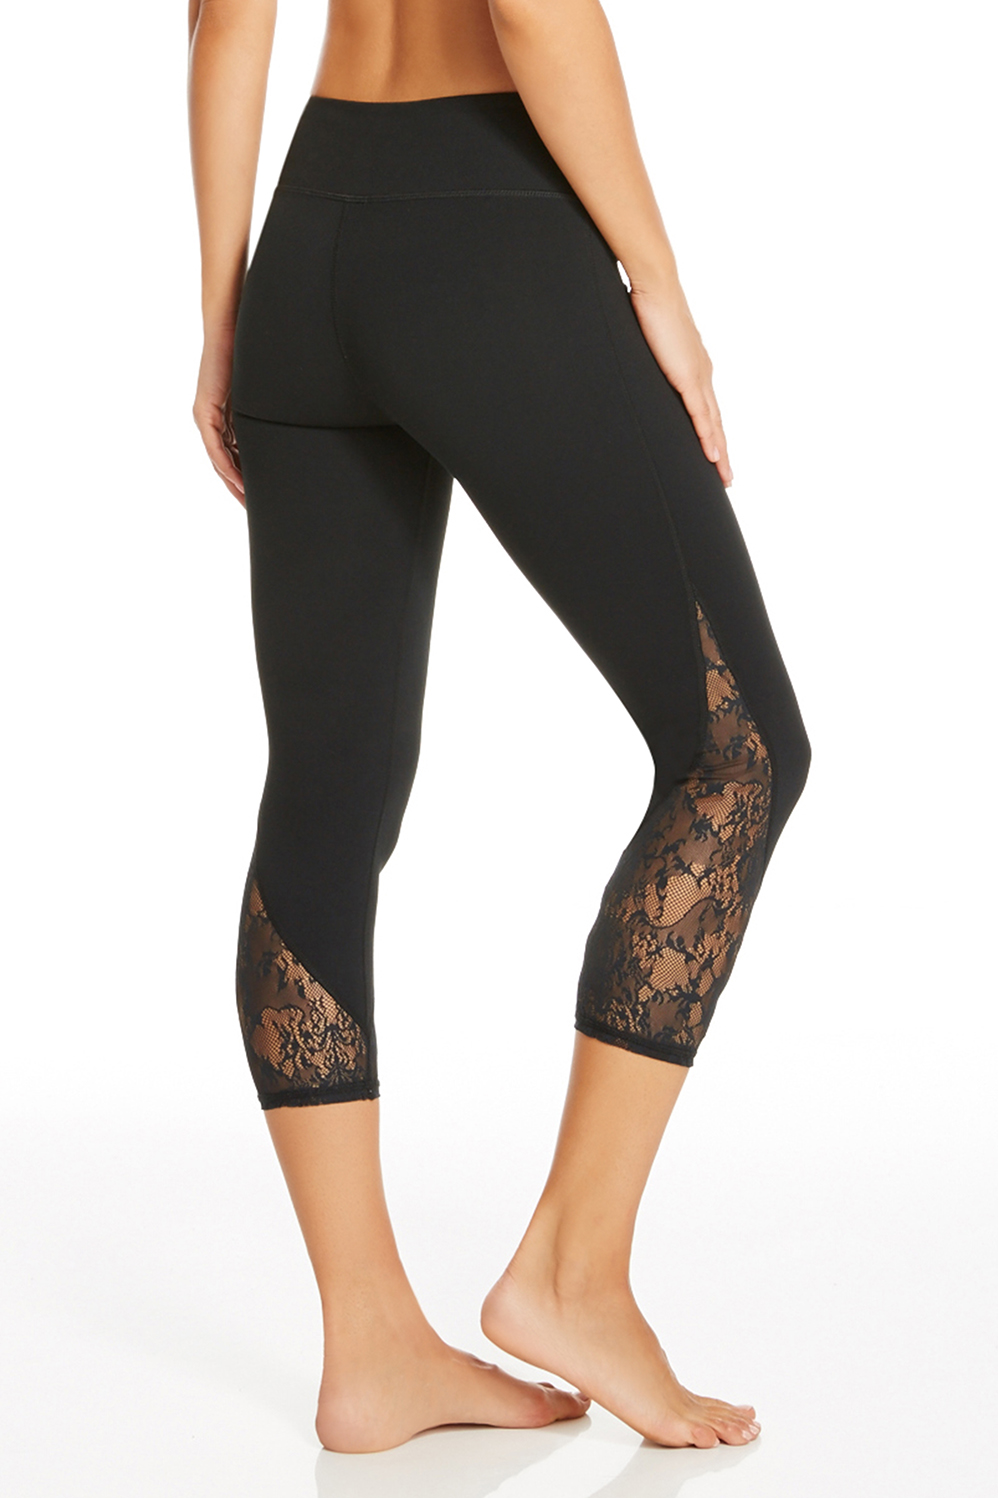 Tuberose Capri In Black Get Great Deals At Fabletics